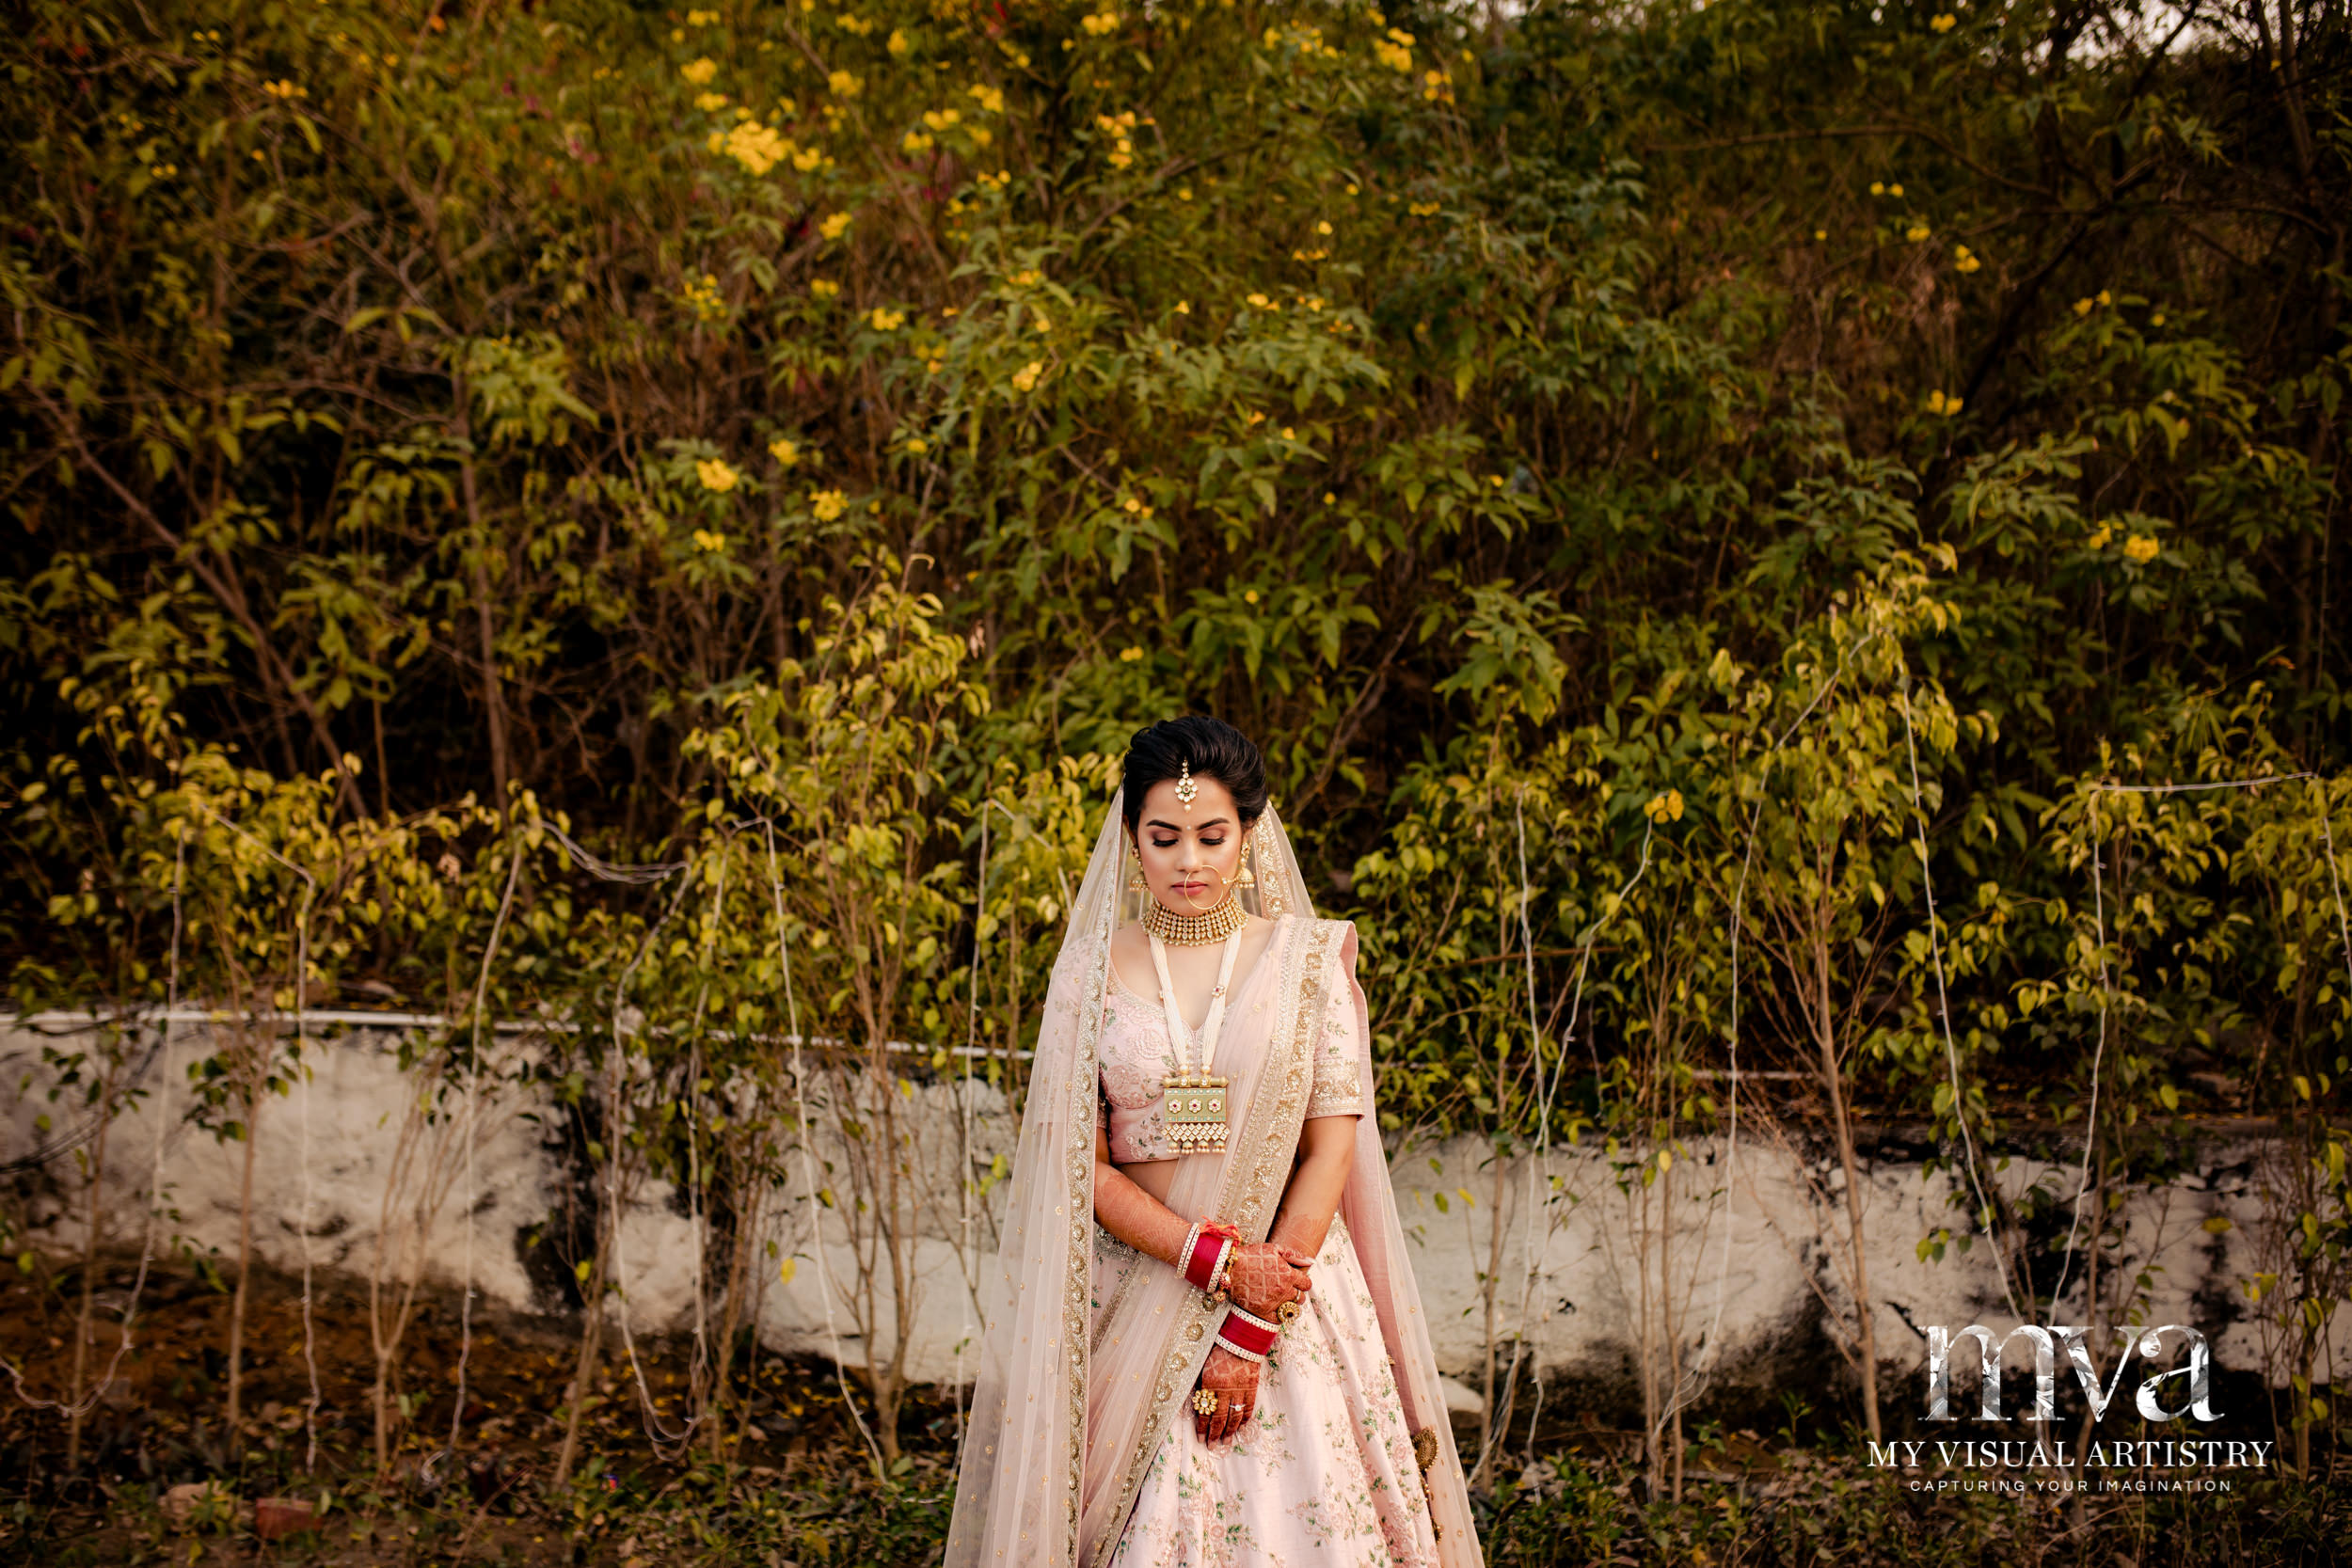 0014 -Manali_Sahil_MVA_INDIAN_ASIAN_WEDDING_DESTINATION-2841.jpg